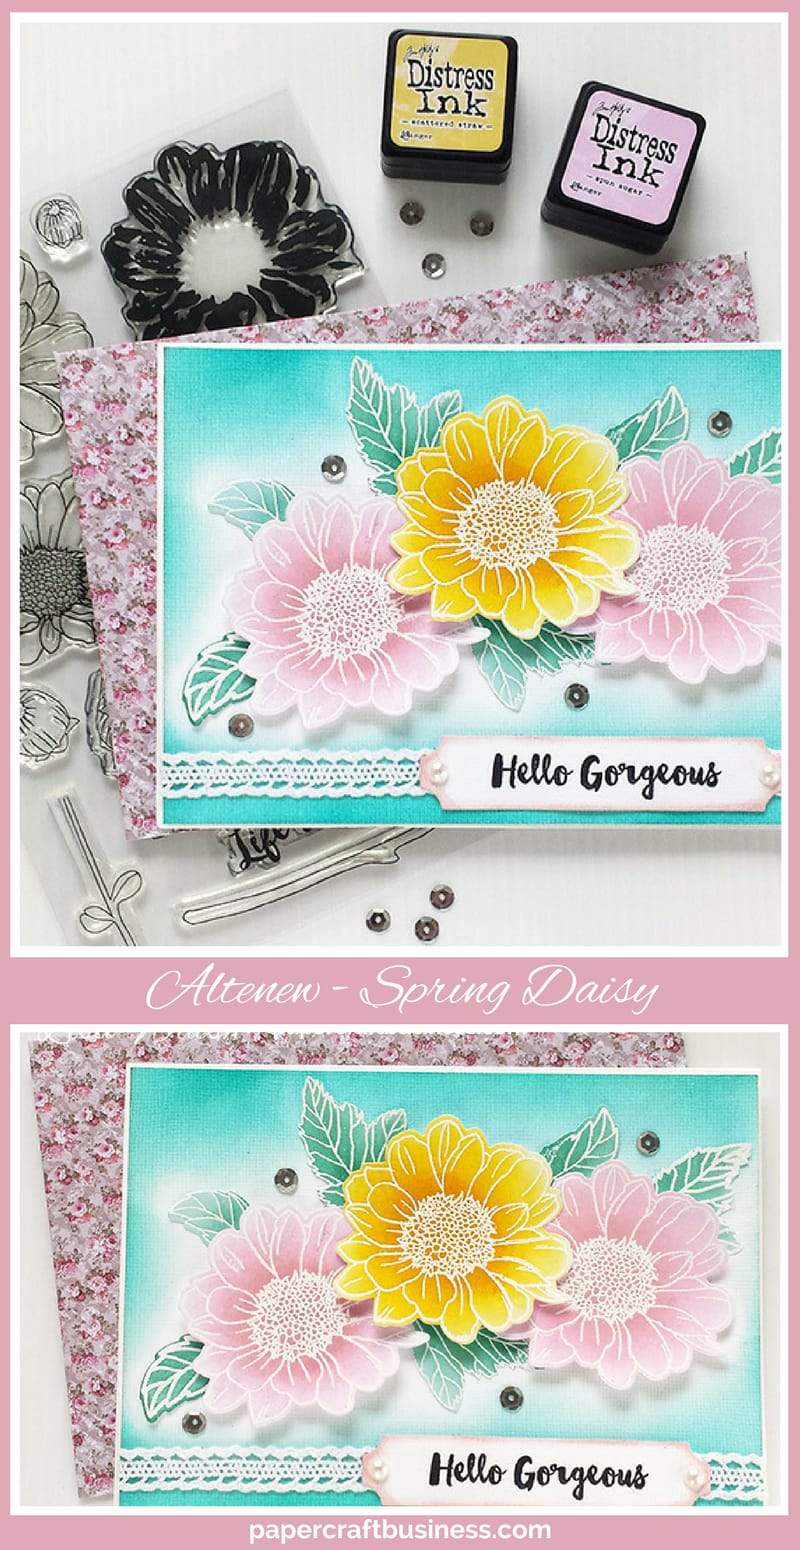 A handmade card created with Altenew Spring Daisy Stamp Set & co-ordinating dies. Read the blog post for step by step instructions & the list of products used so you can create the card yourself - papercraftbusiness.com